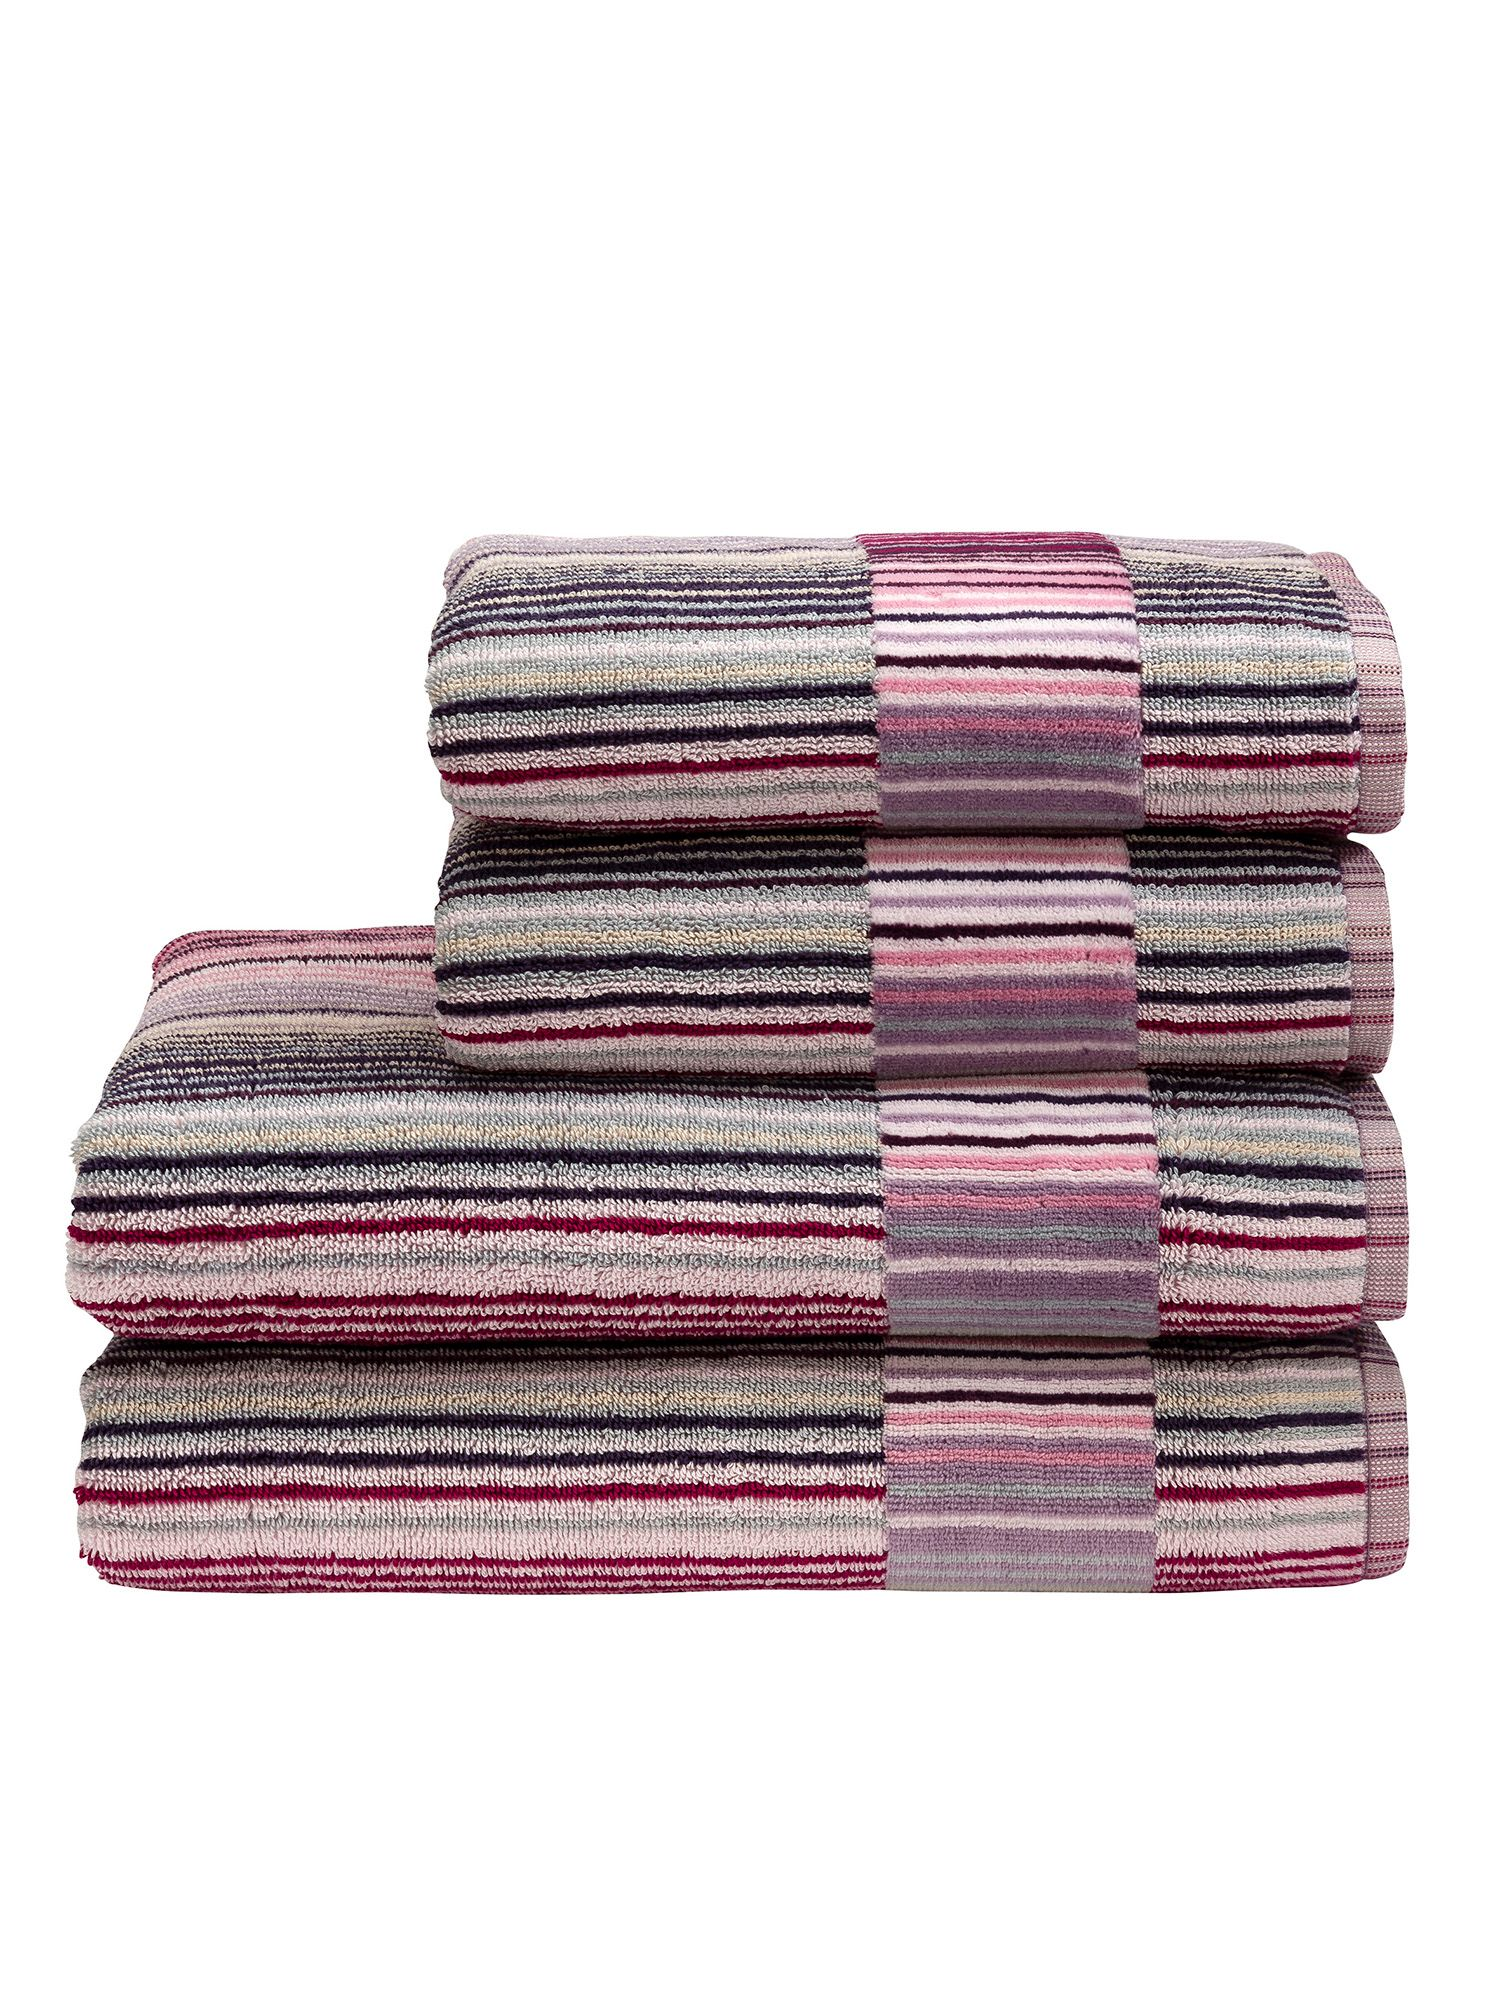 Supreme capsule stripe towel berry